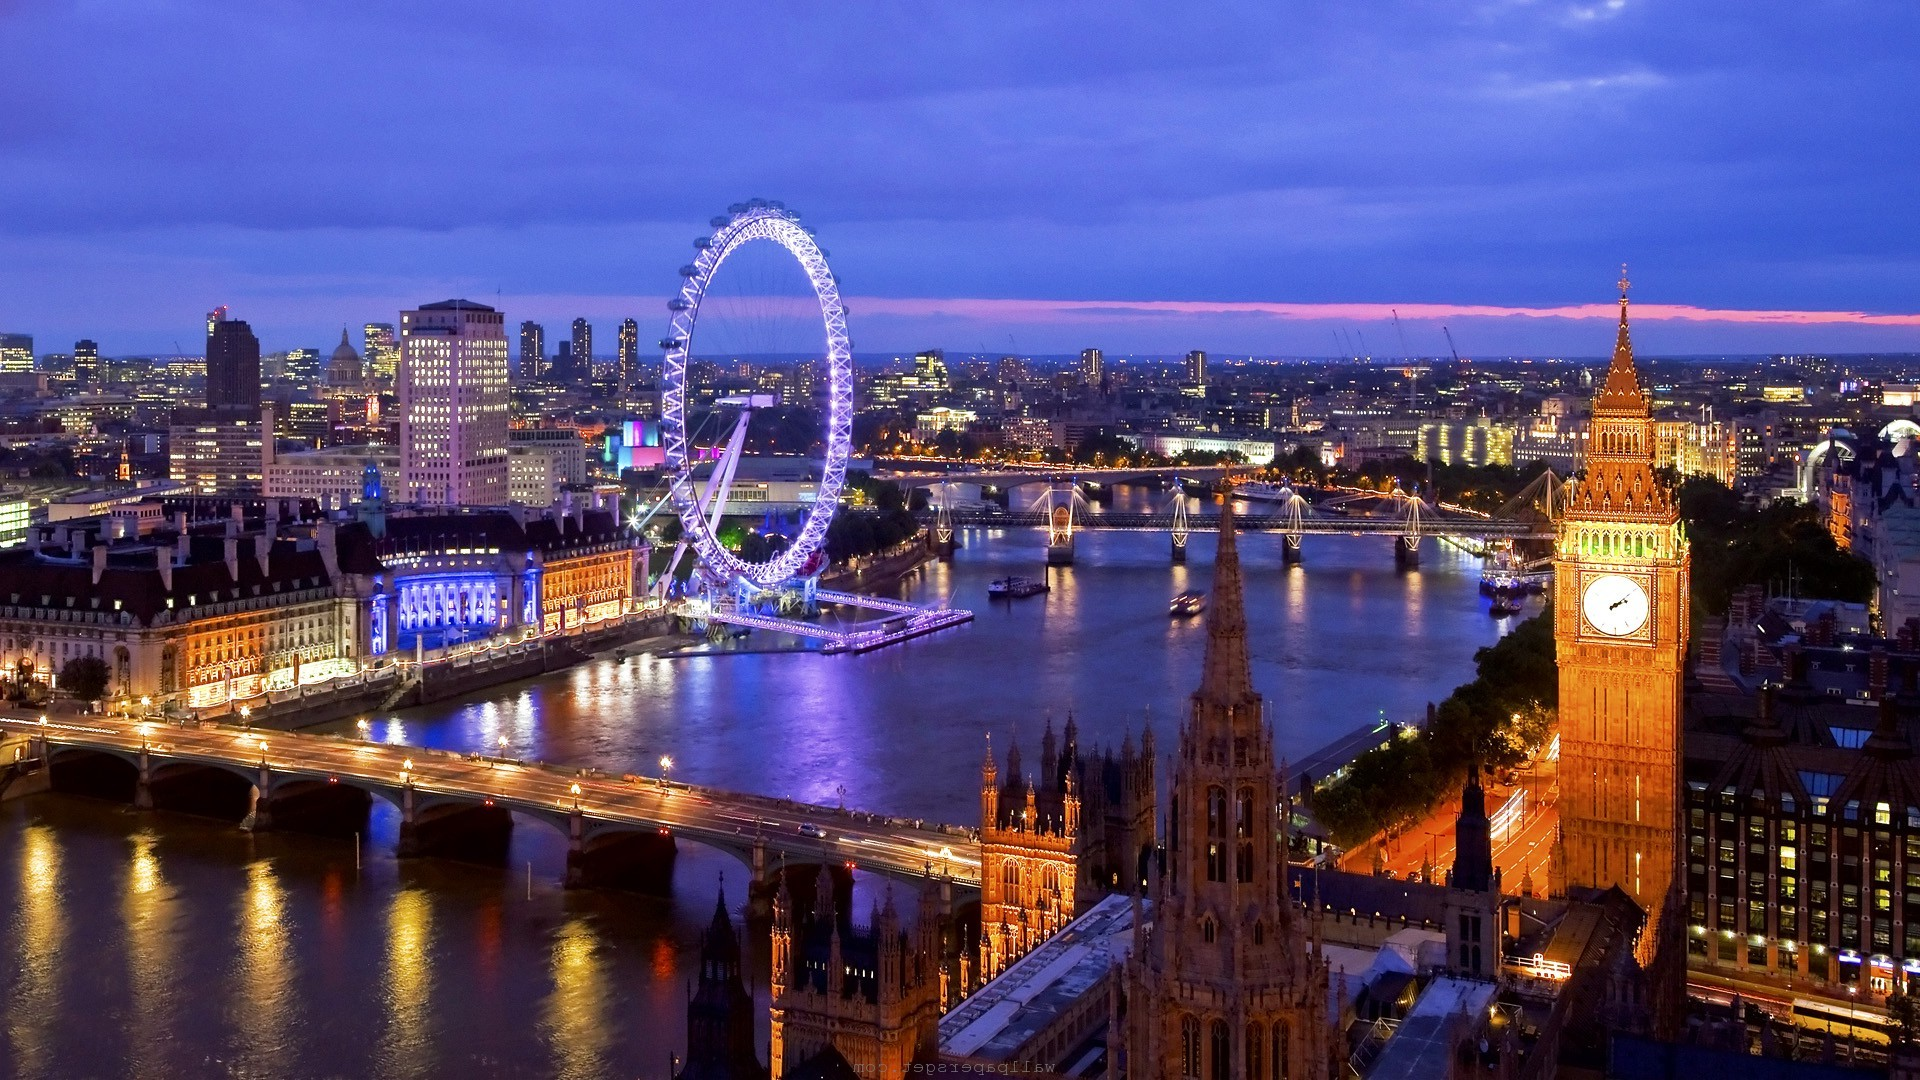 london-at-night-hd-zzx27hei-e1395682633110.jpg